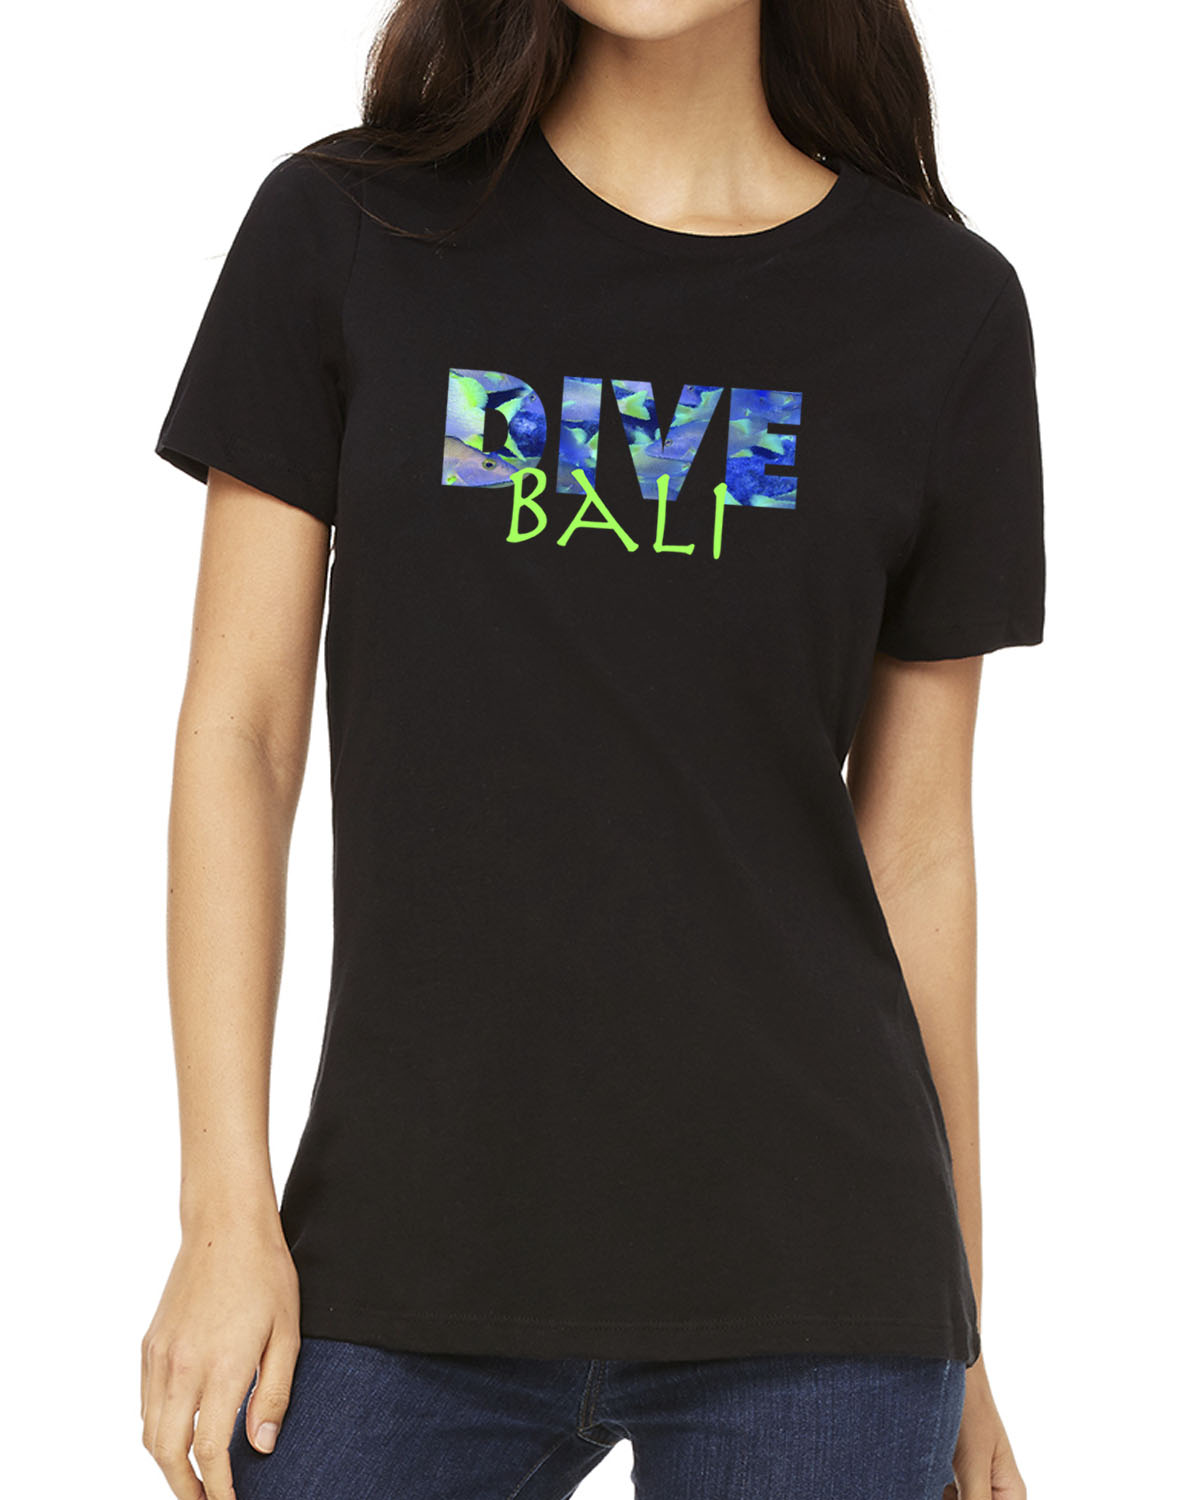 Women's short-sleeve DIVE Bali t-shirt (black)